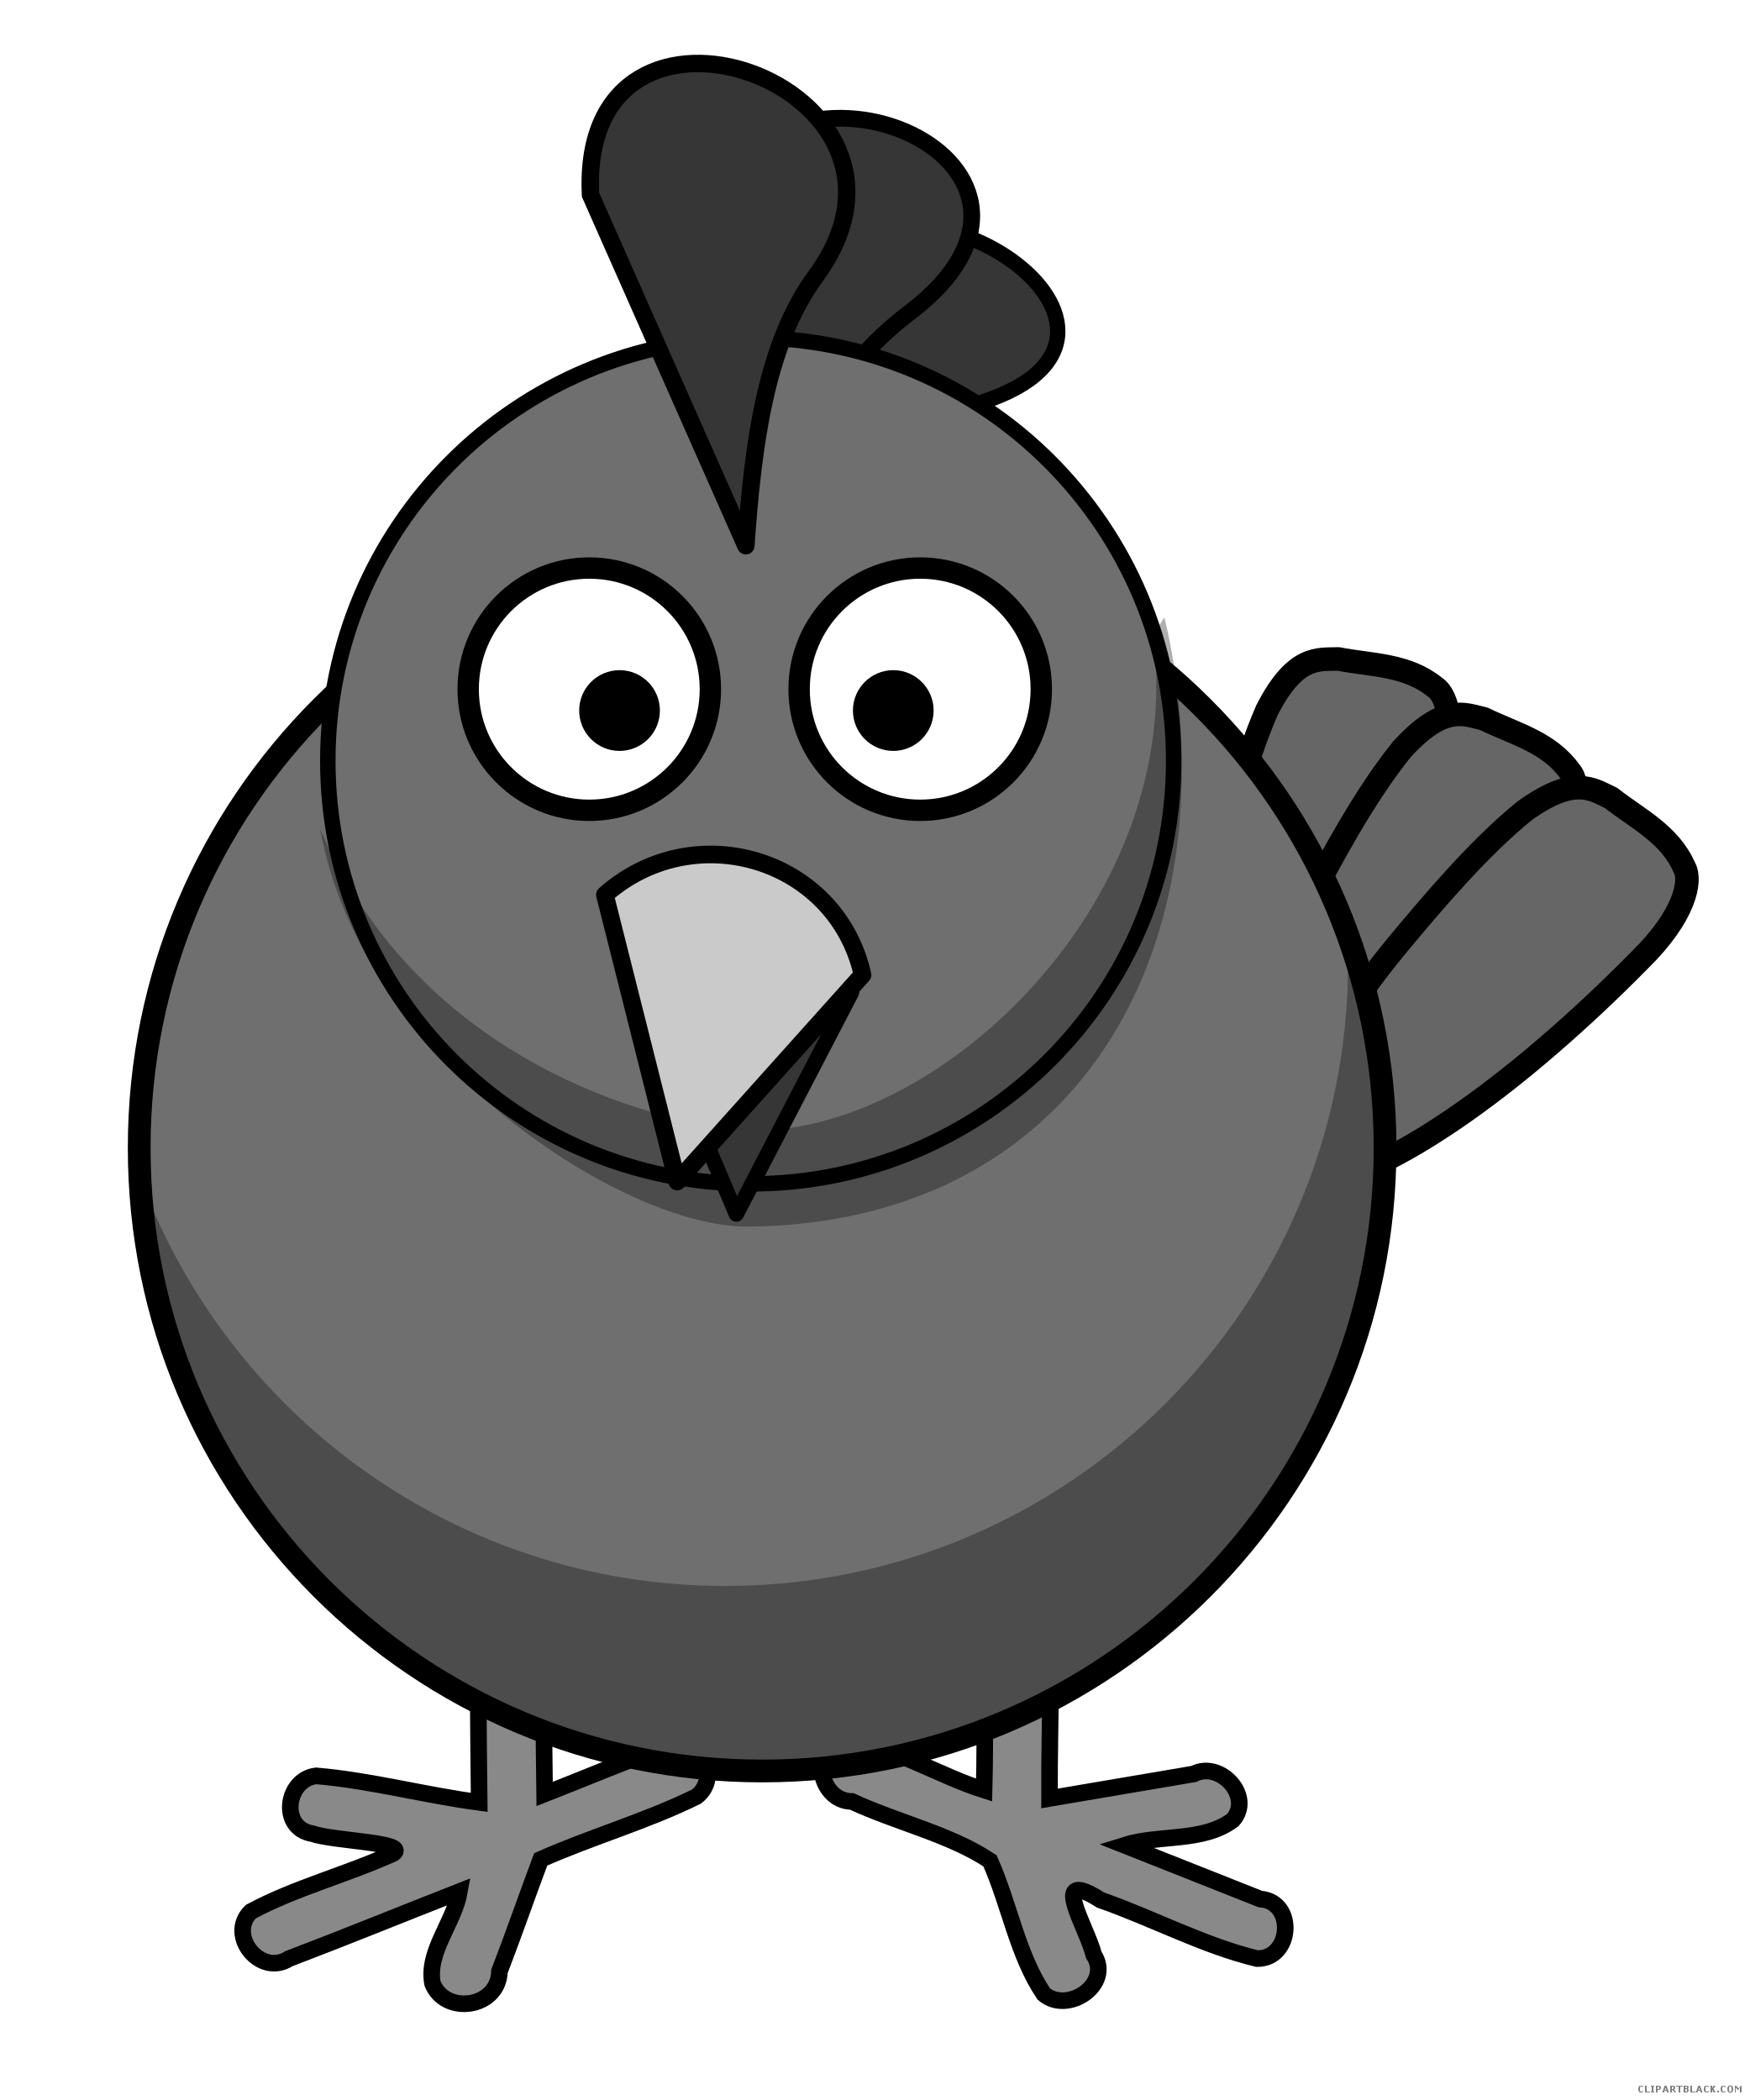 Footprints clipart chicken. Page of clipartblack com